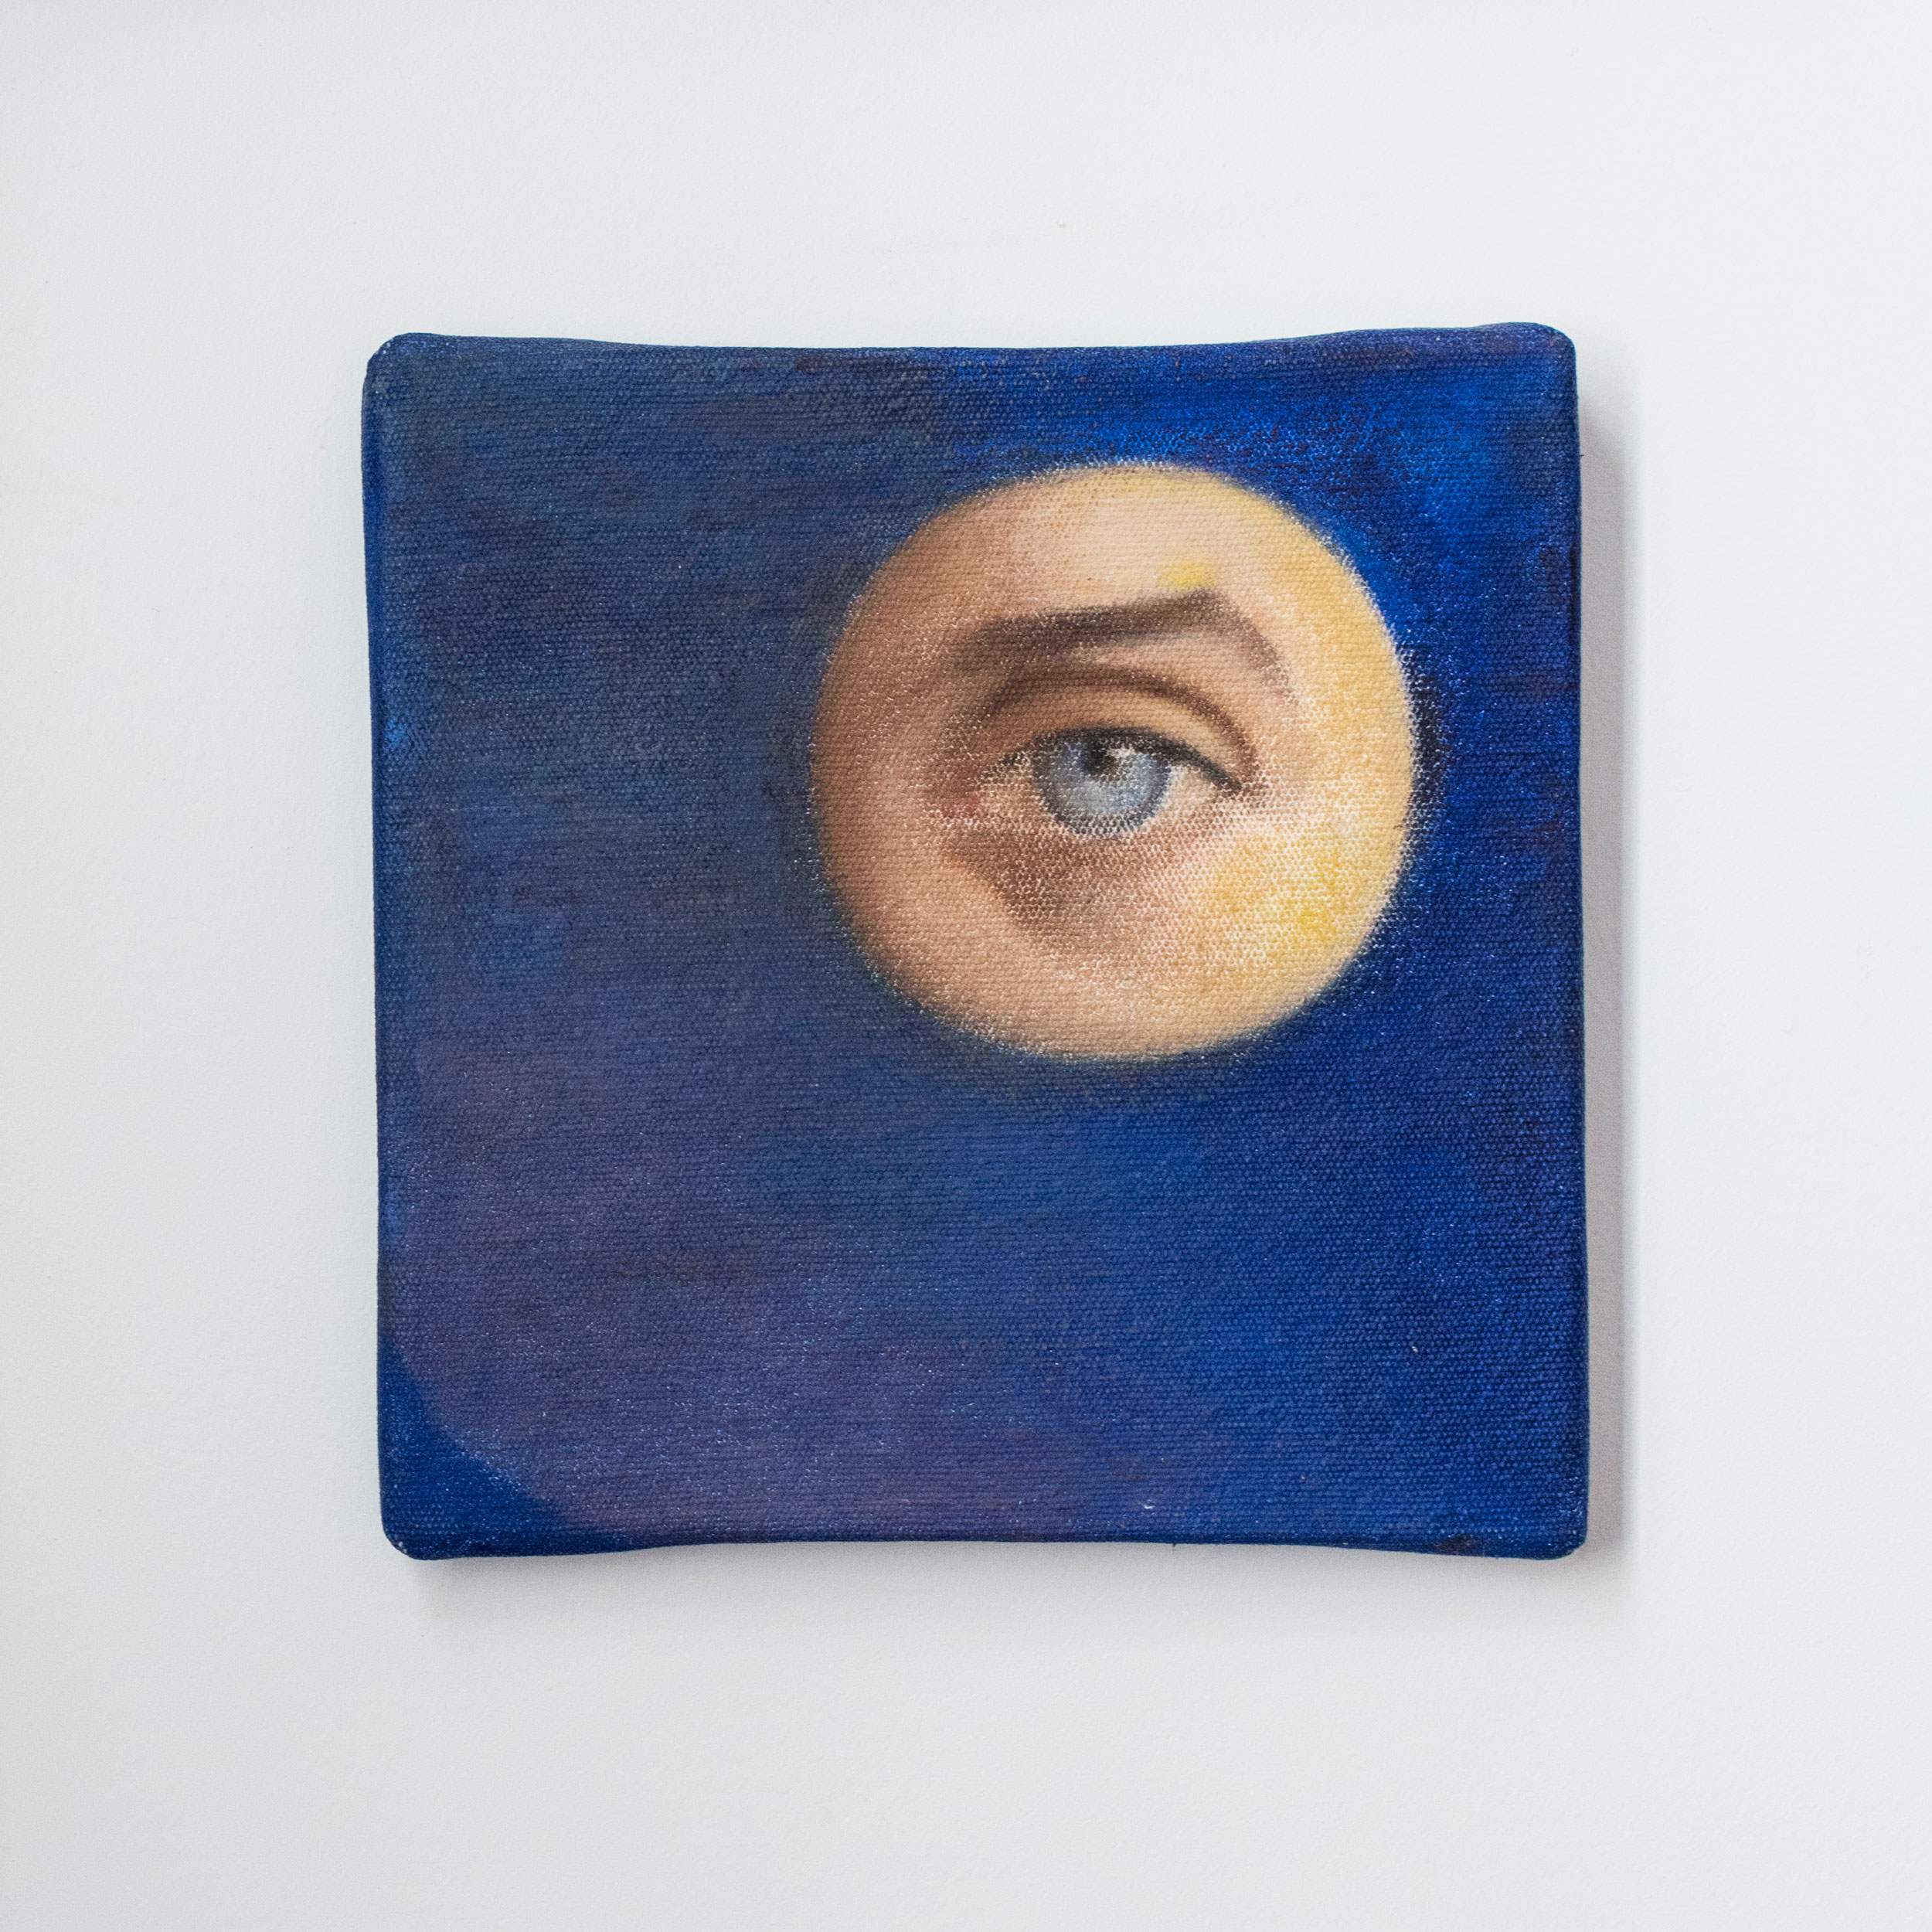 A portrait of Mark's right eye by Margaret Witherspoon